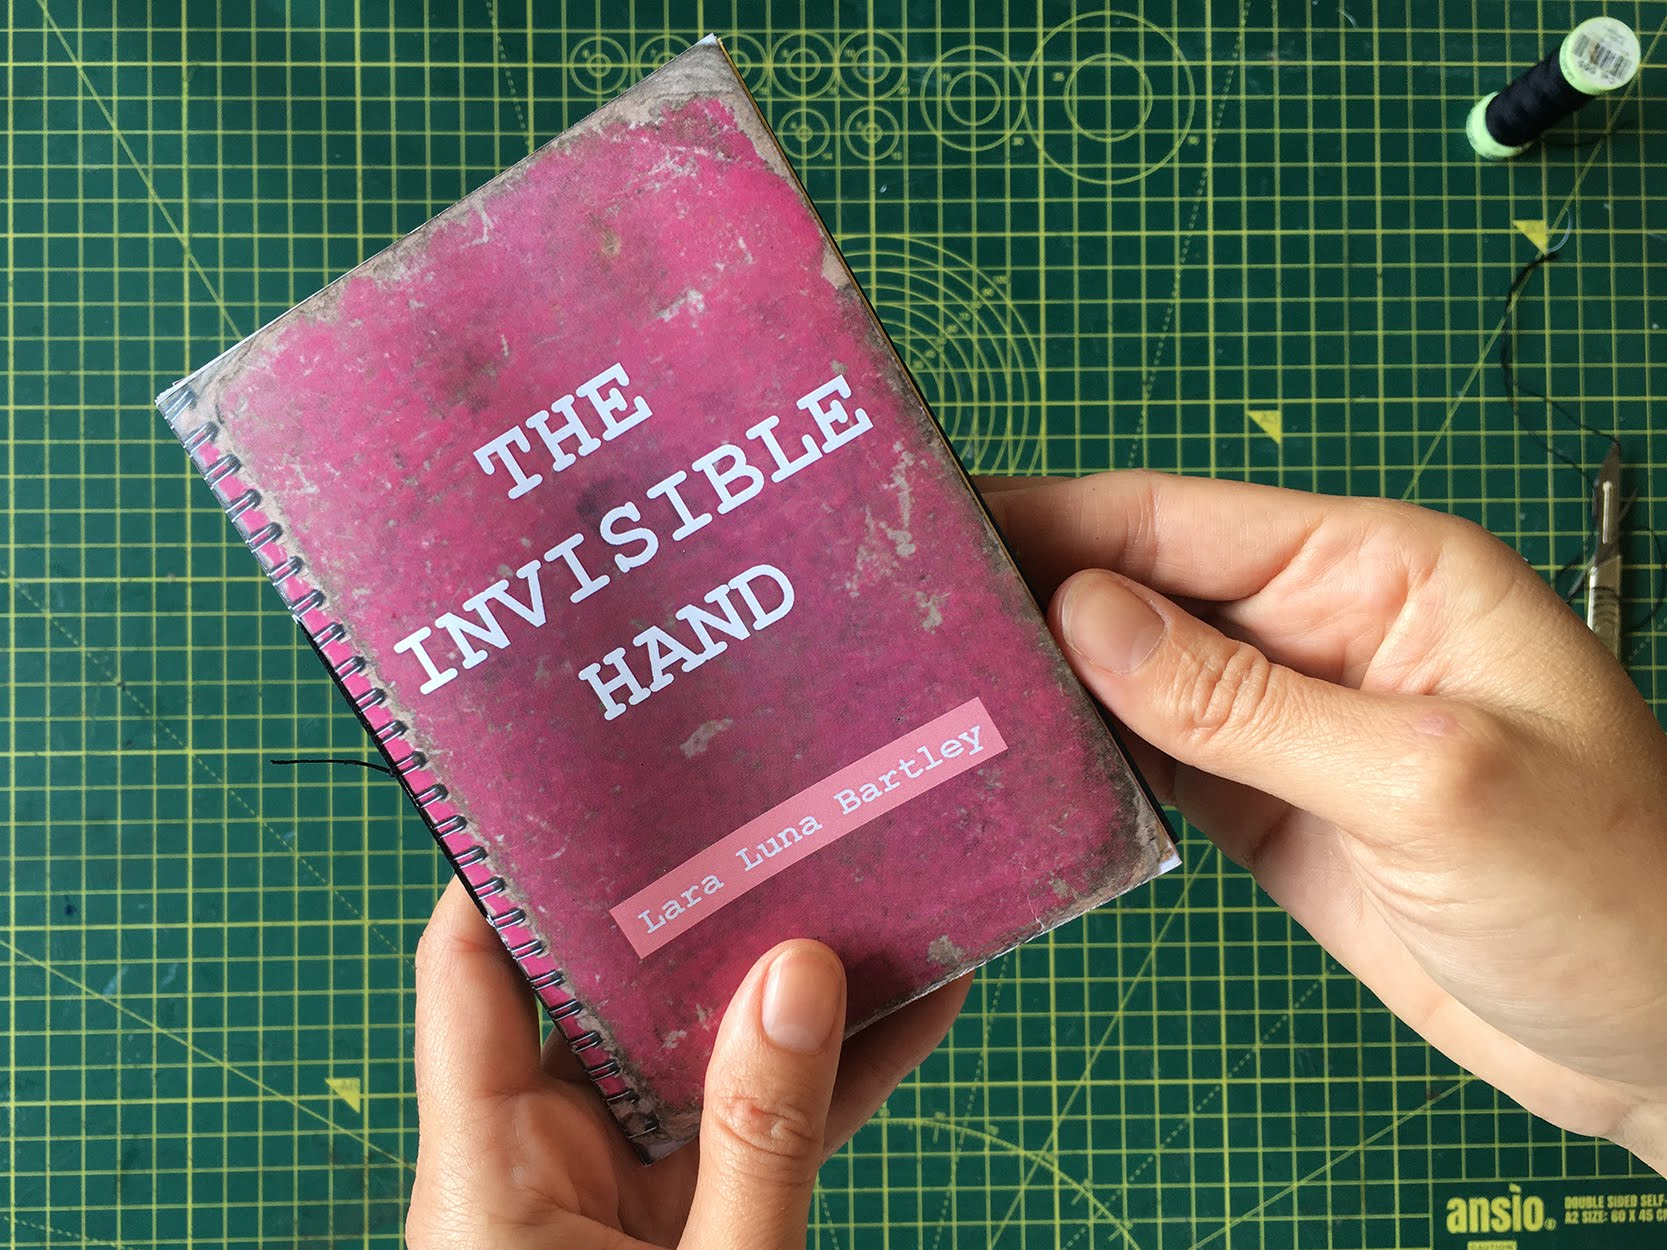 the invisible hand, zine